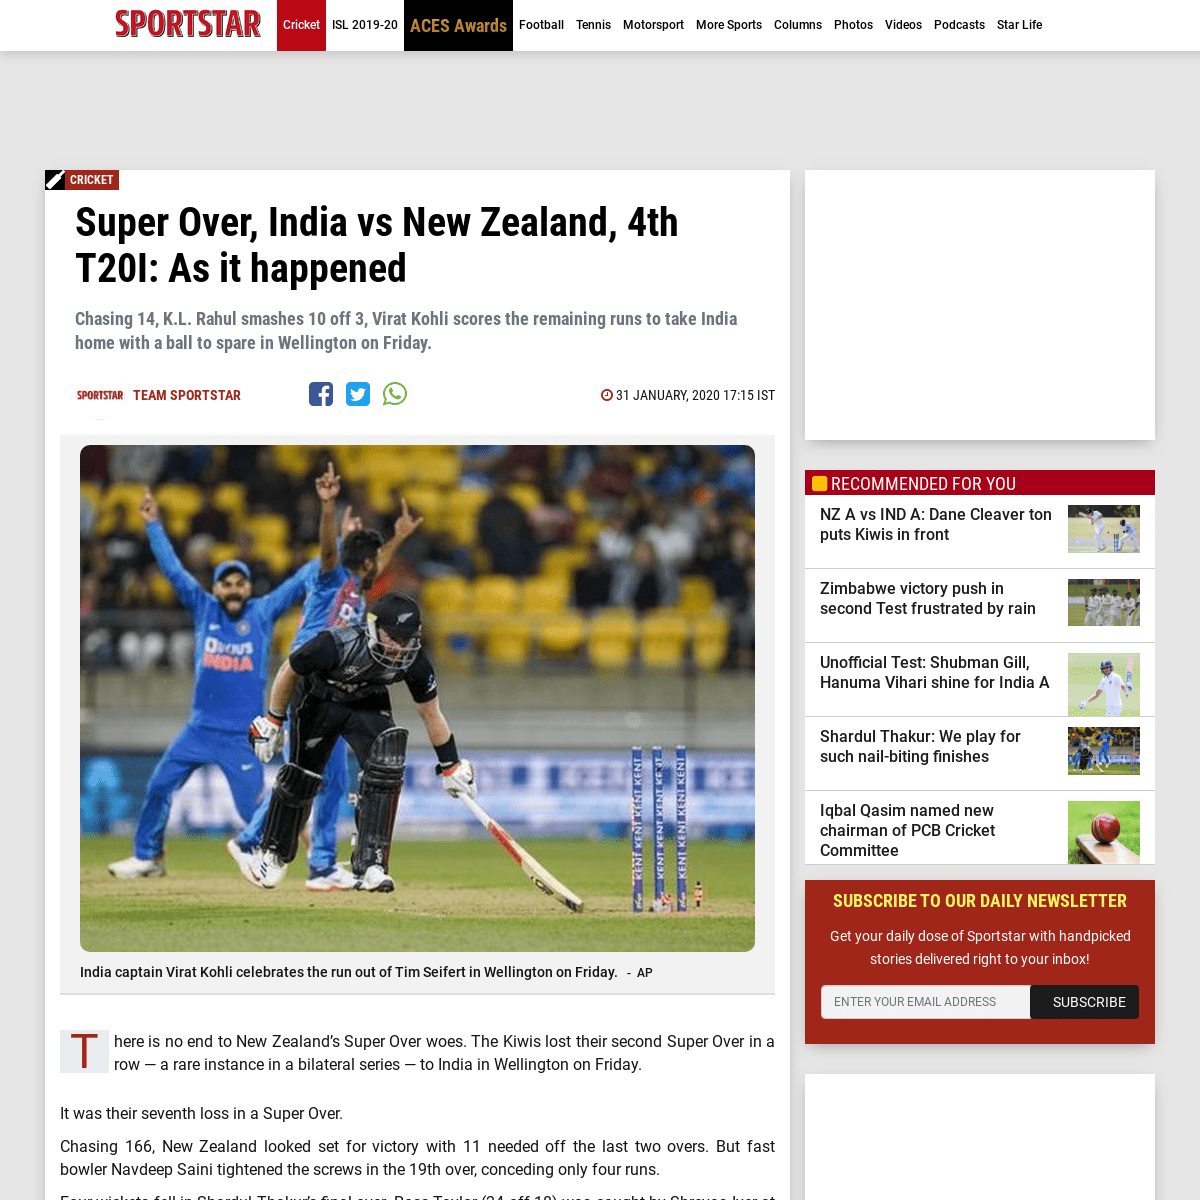 Super Over, India vs New Zealand, 4th T20I- As it happened - Sportstar